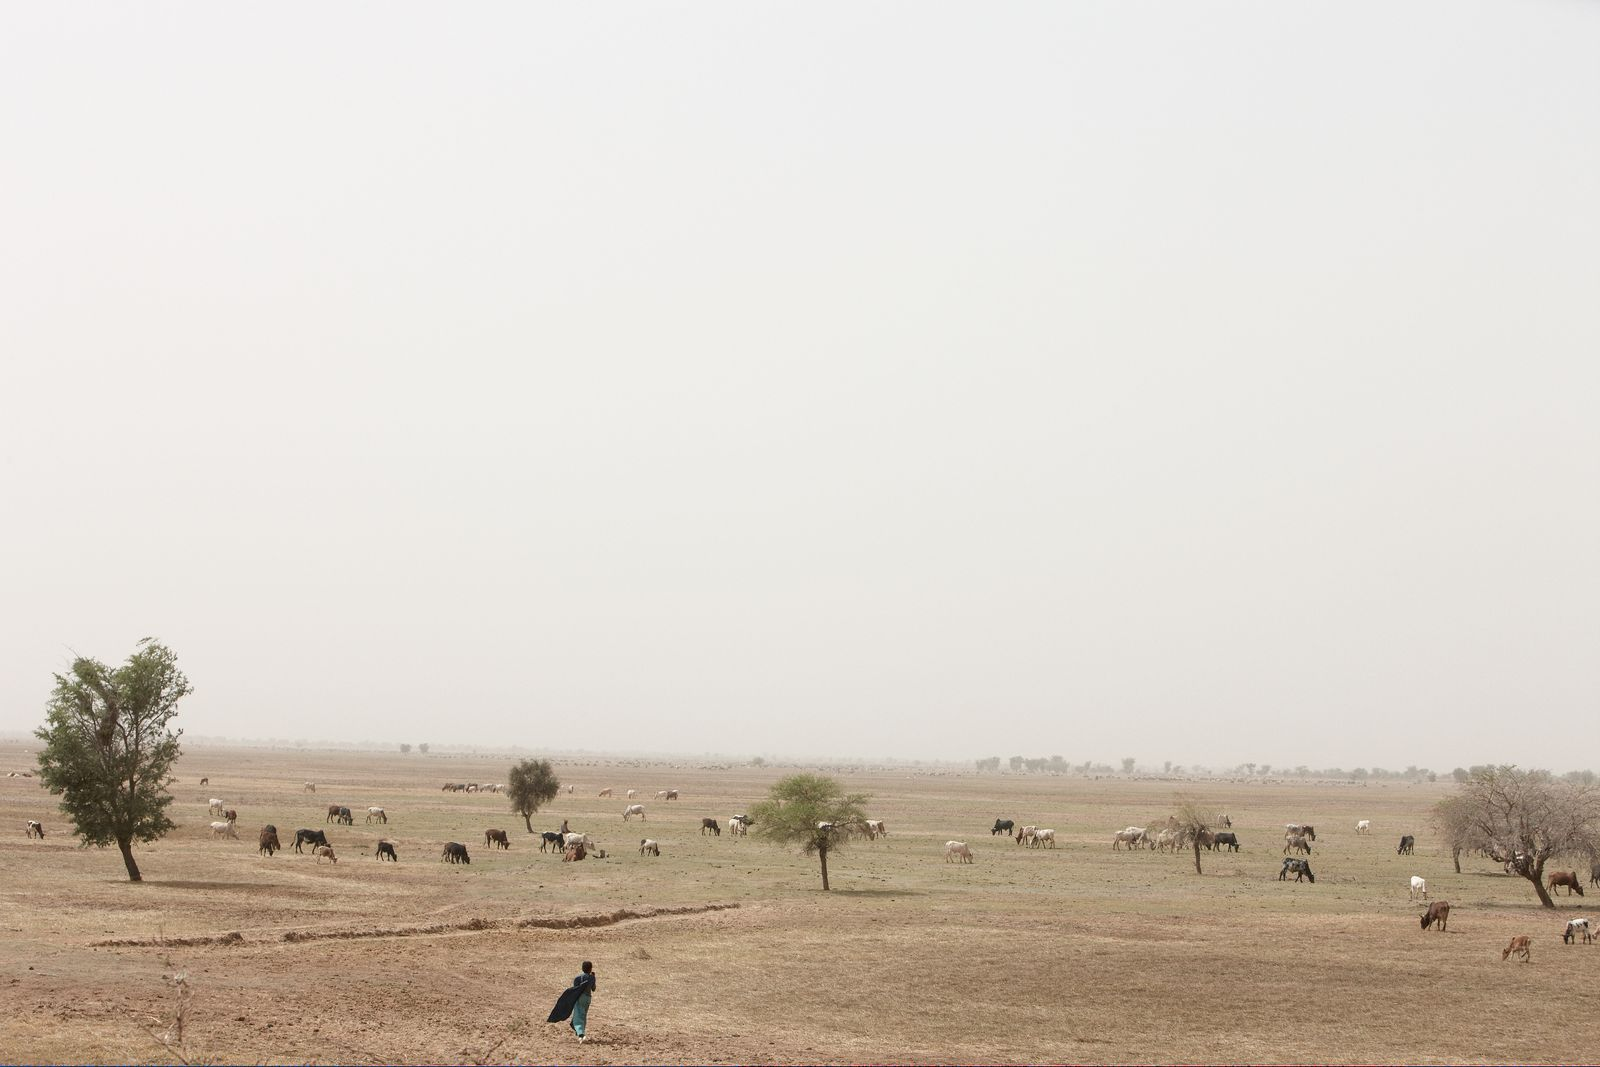 Man walking through the cattle in the field